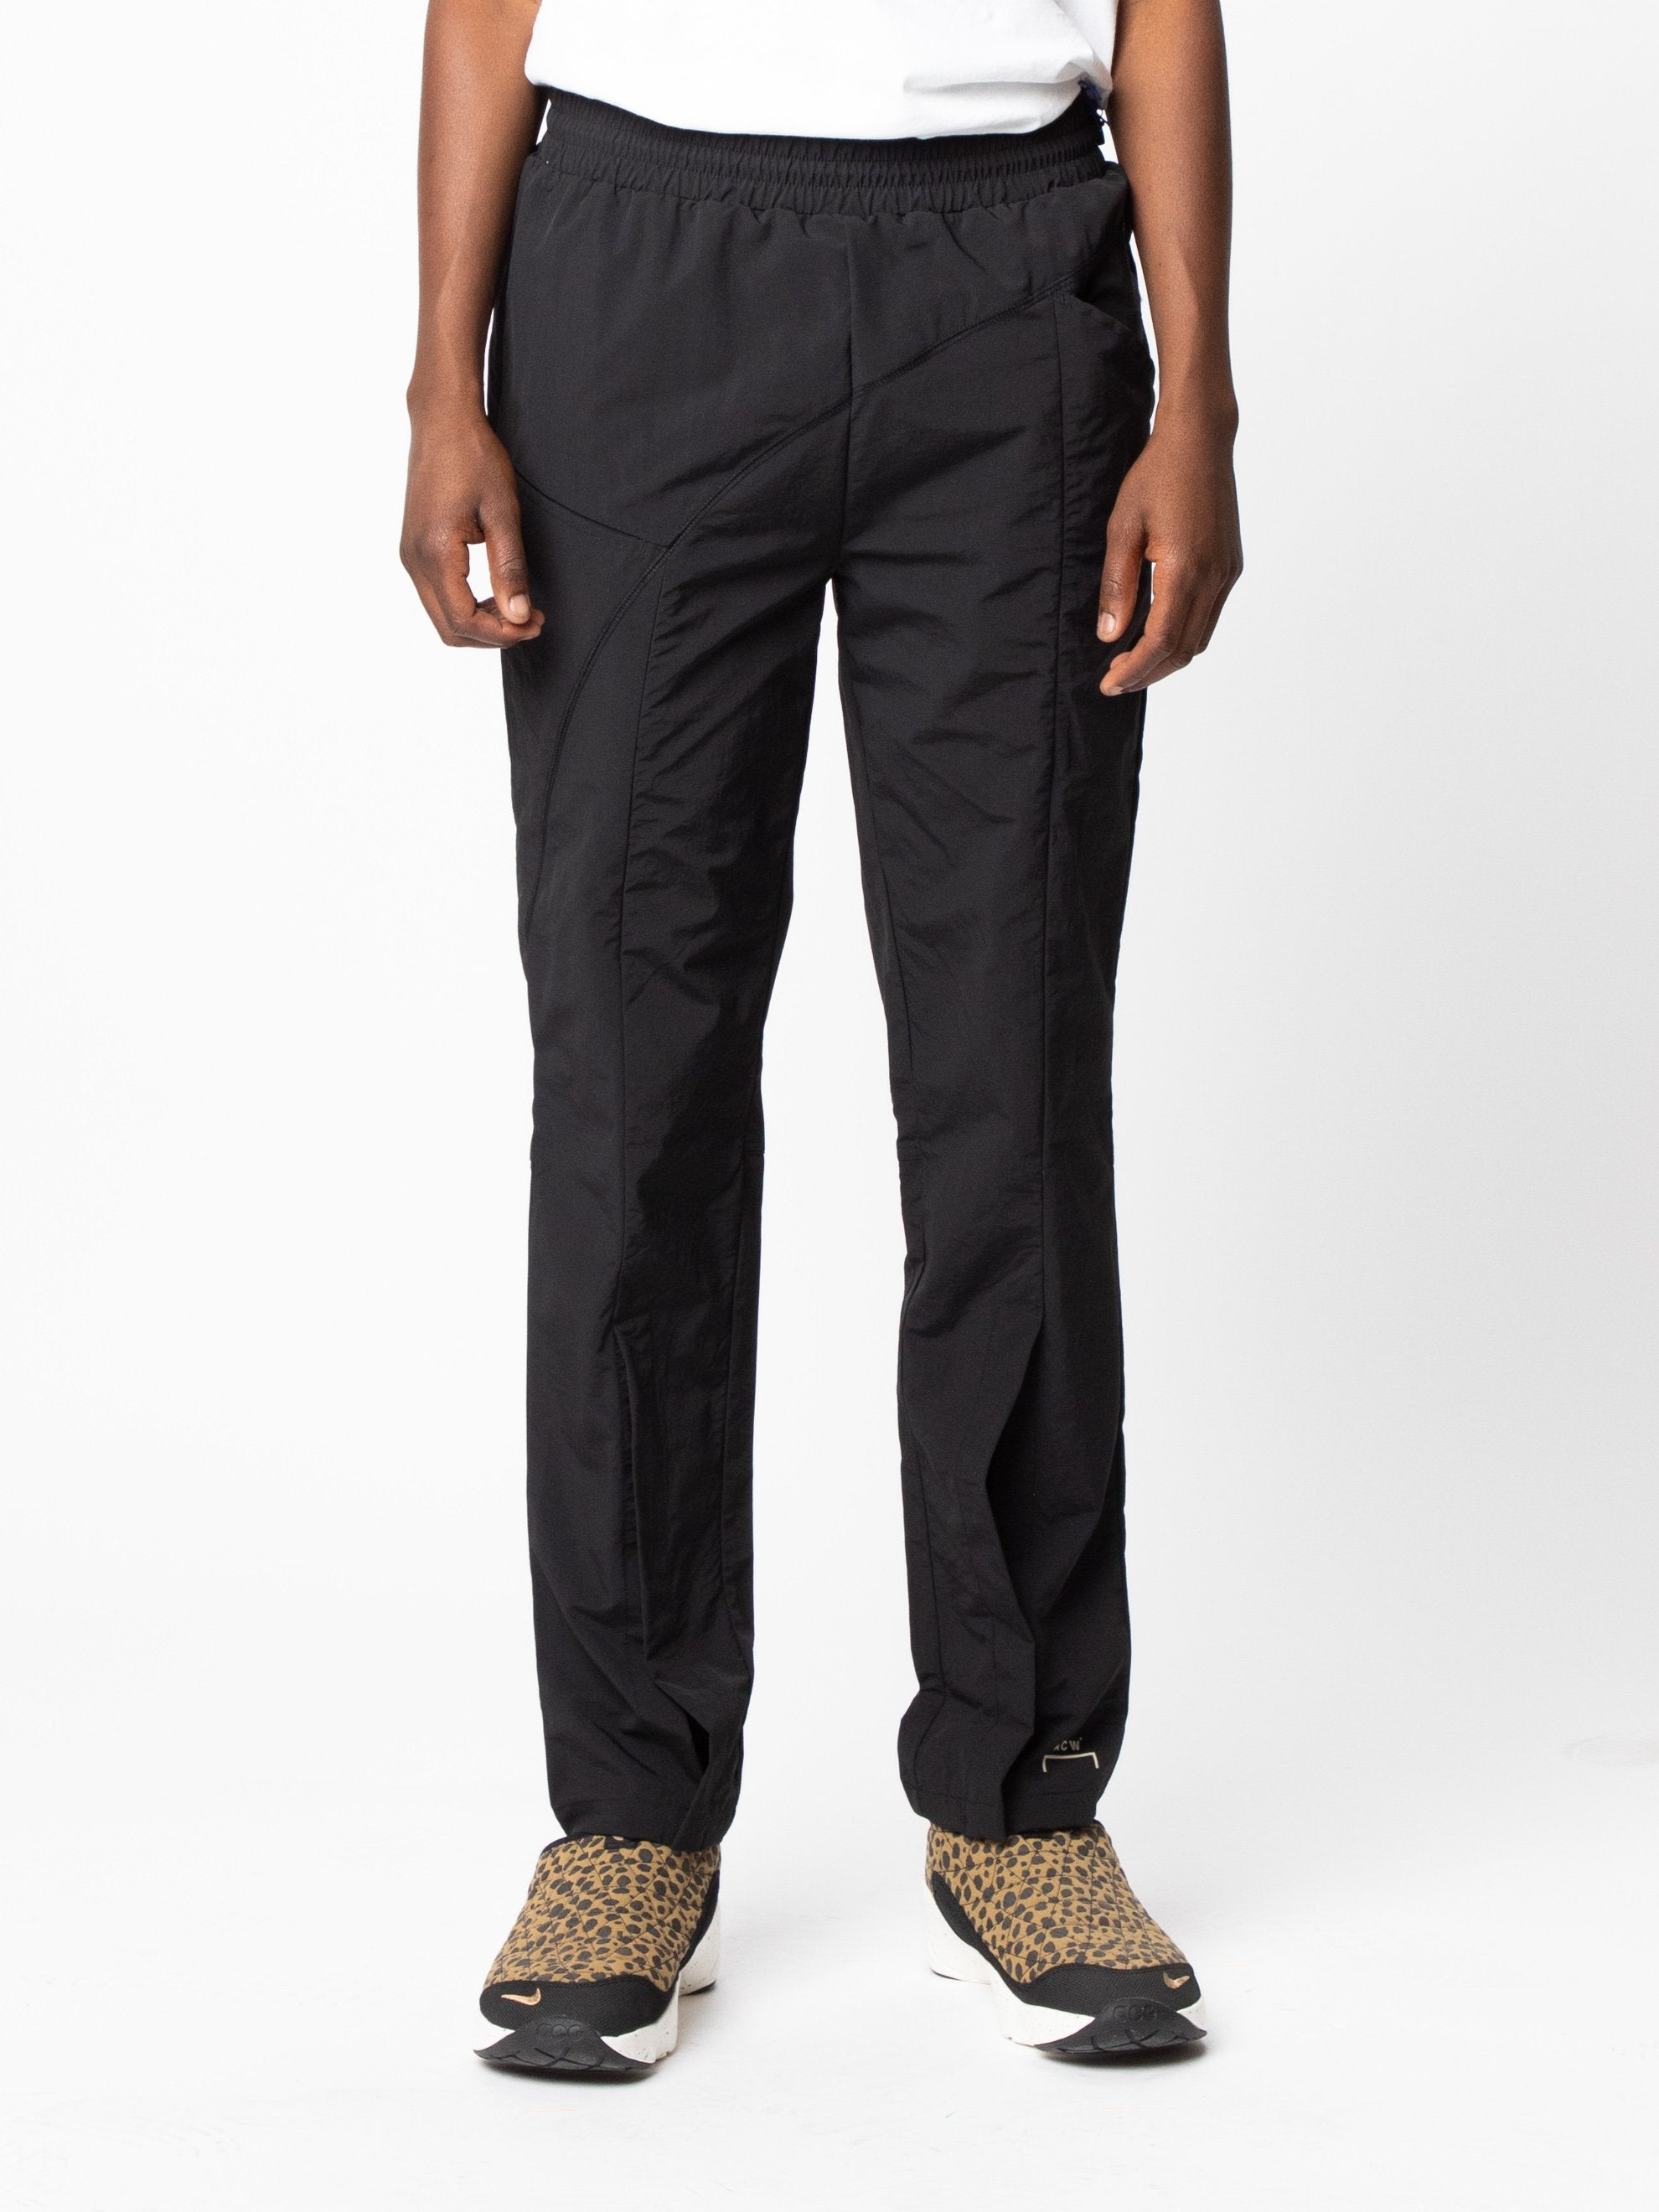 Black Woven Pant Curved Stitch Track Pants 3